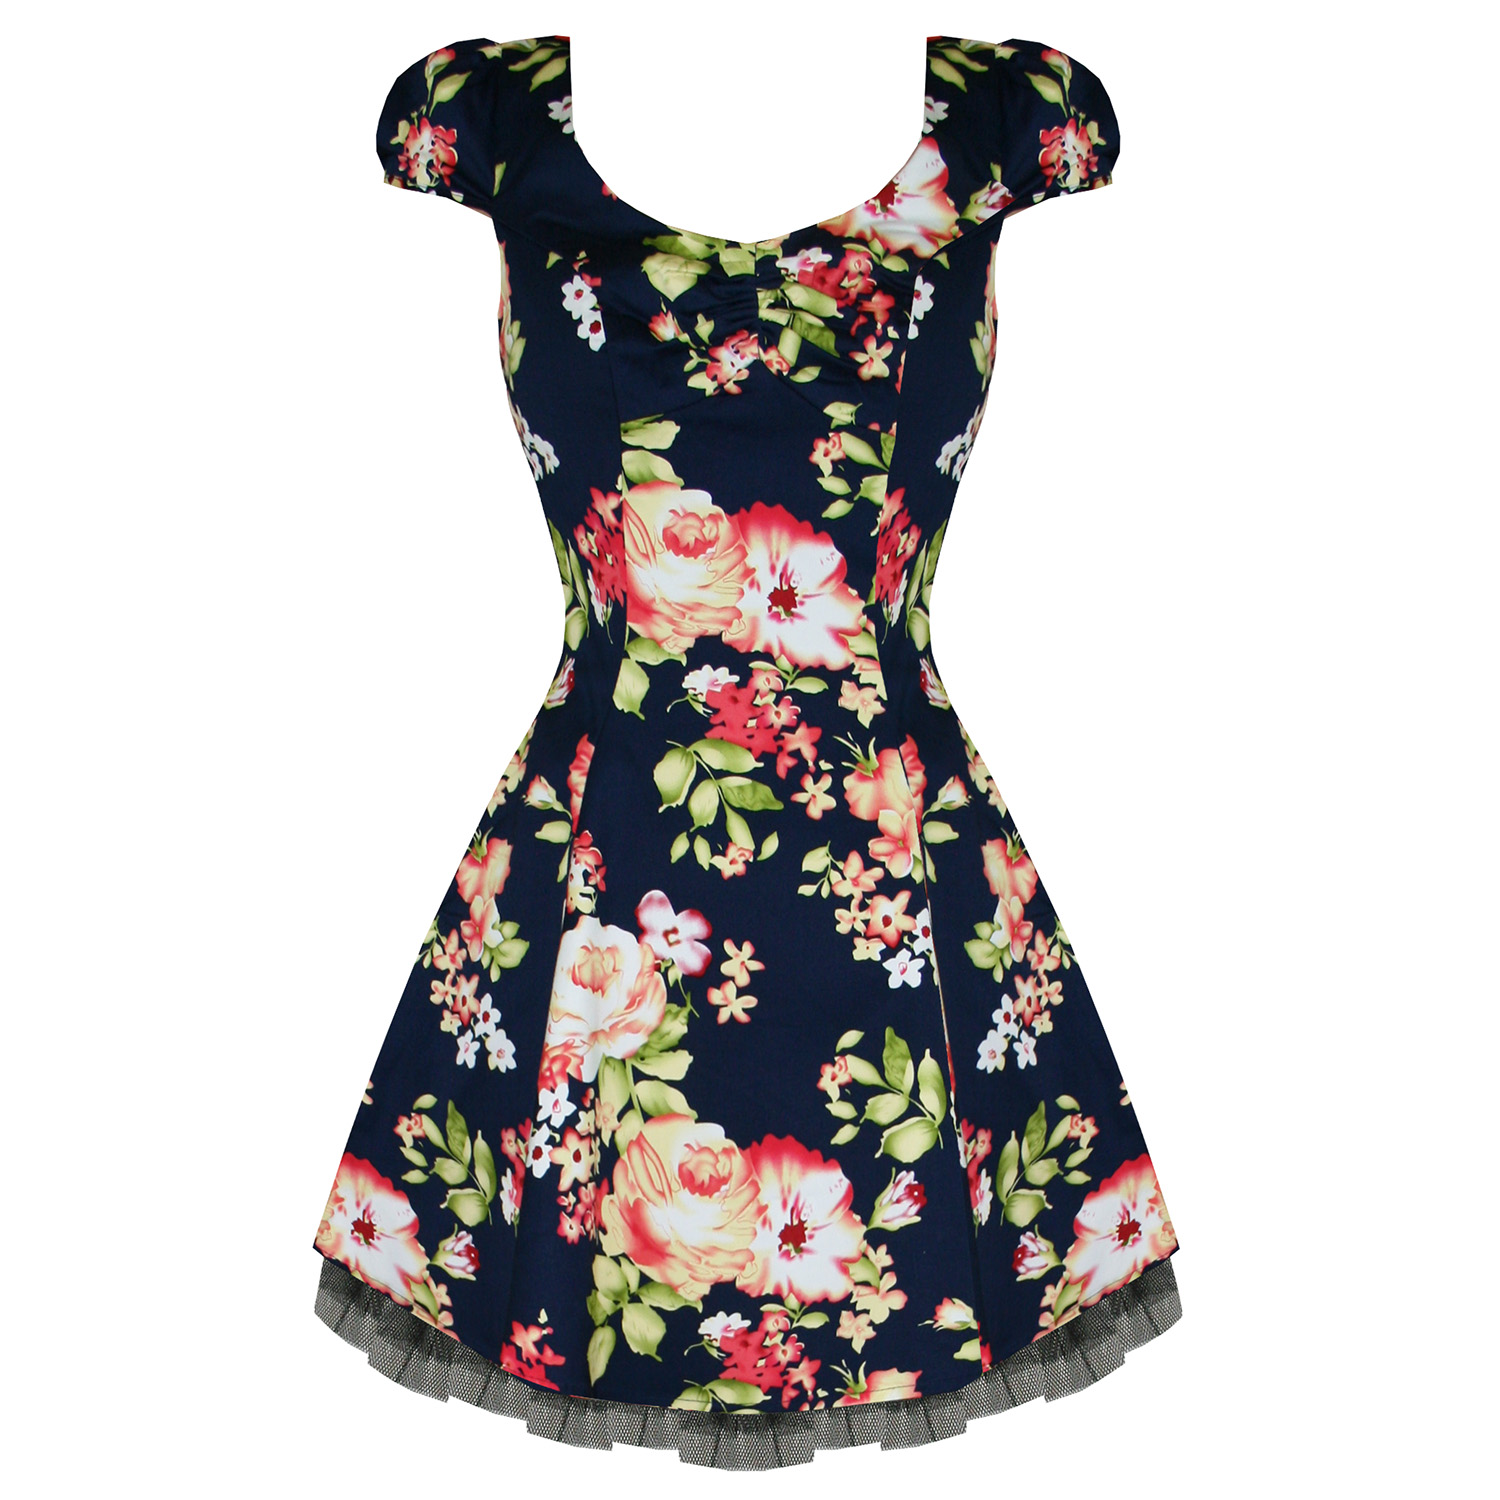 Hearts-and-Roses-London-New-Navy-Blue-Floral-Vintage-50s-Style-Mini-Prom-Dress